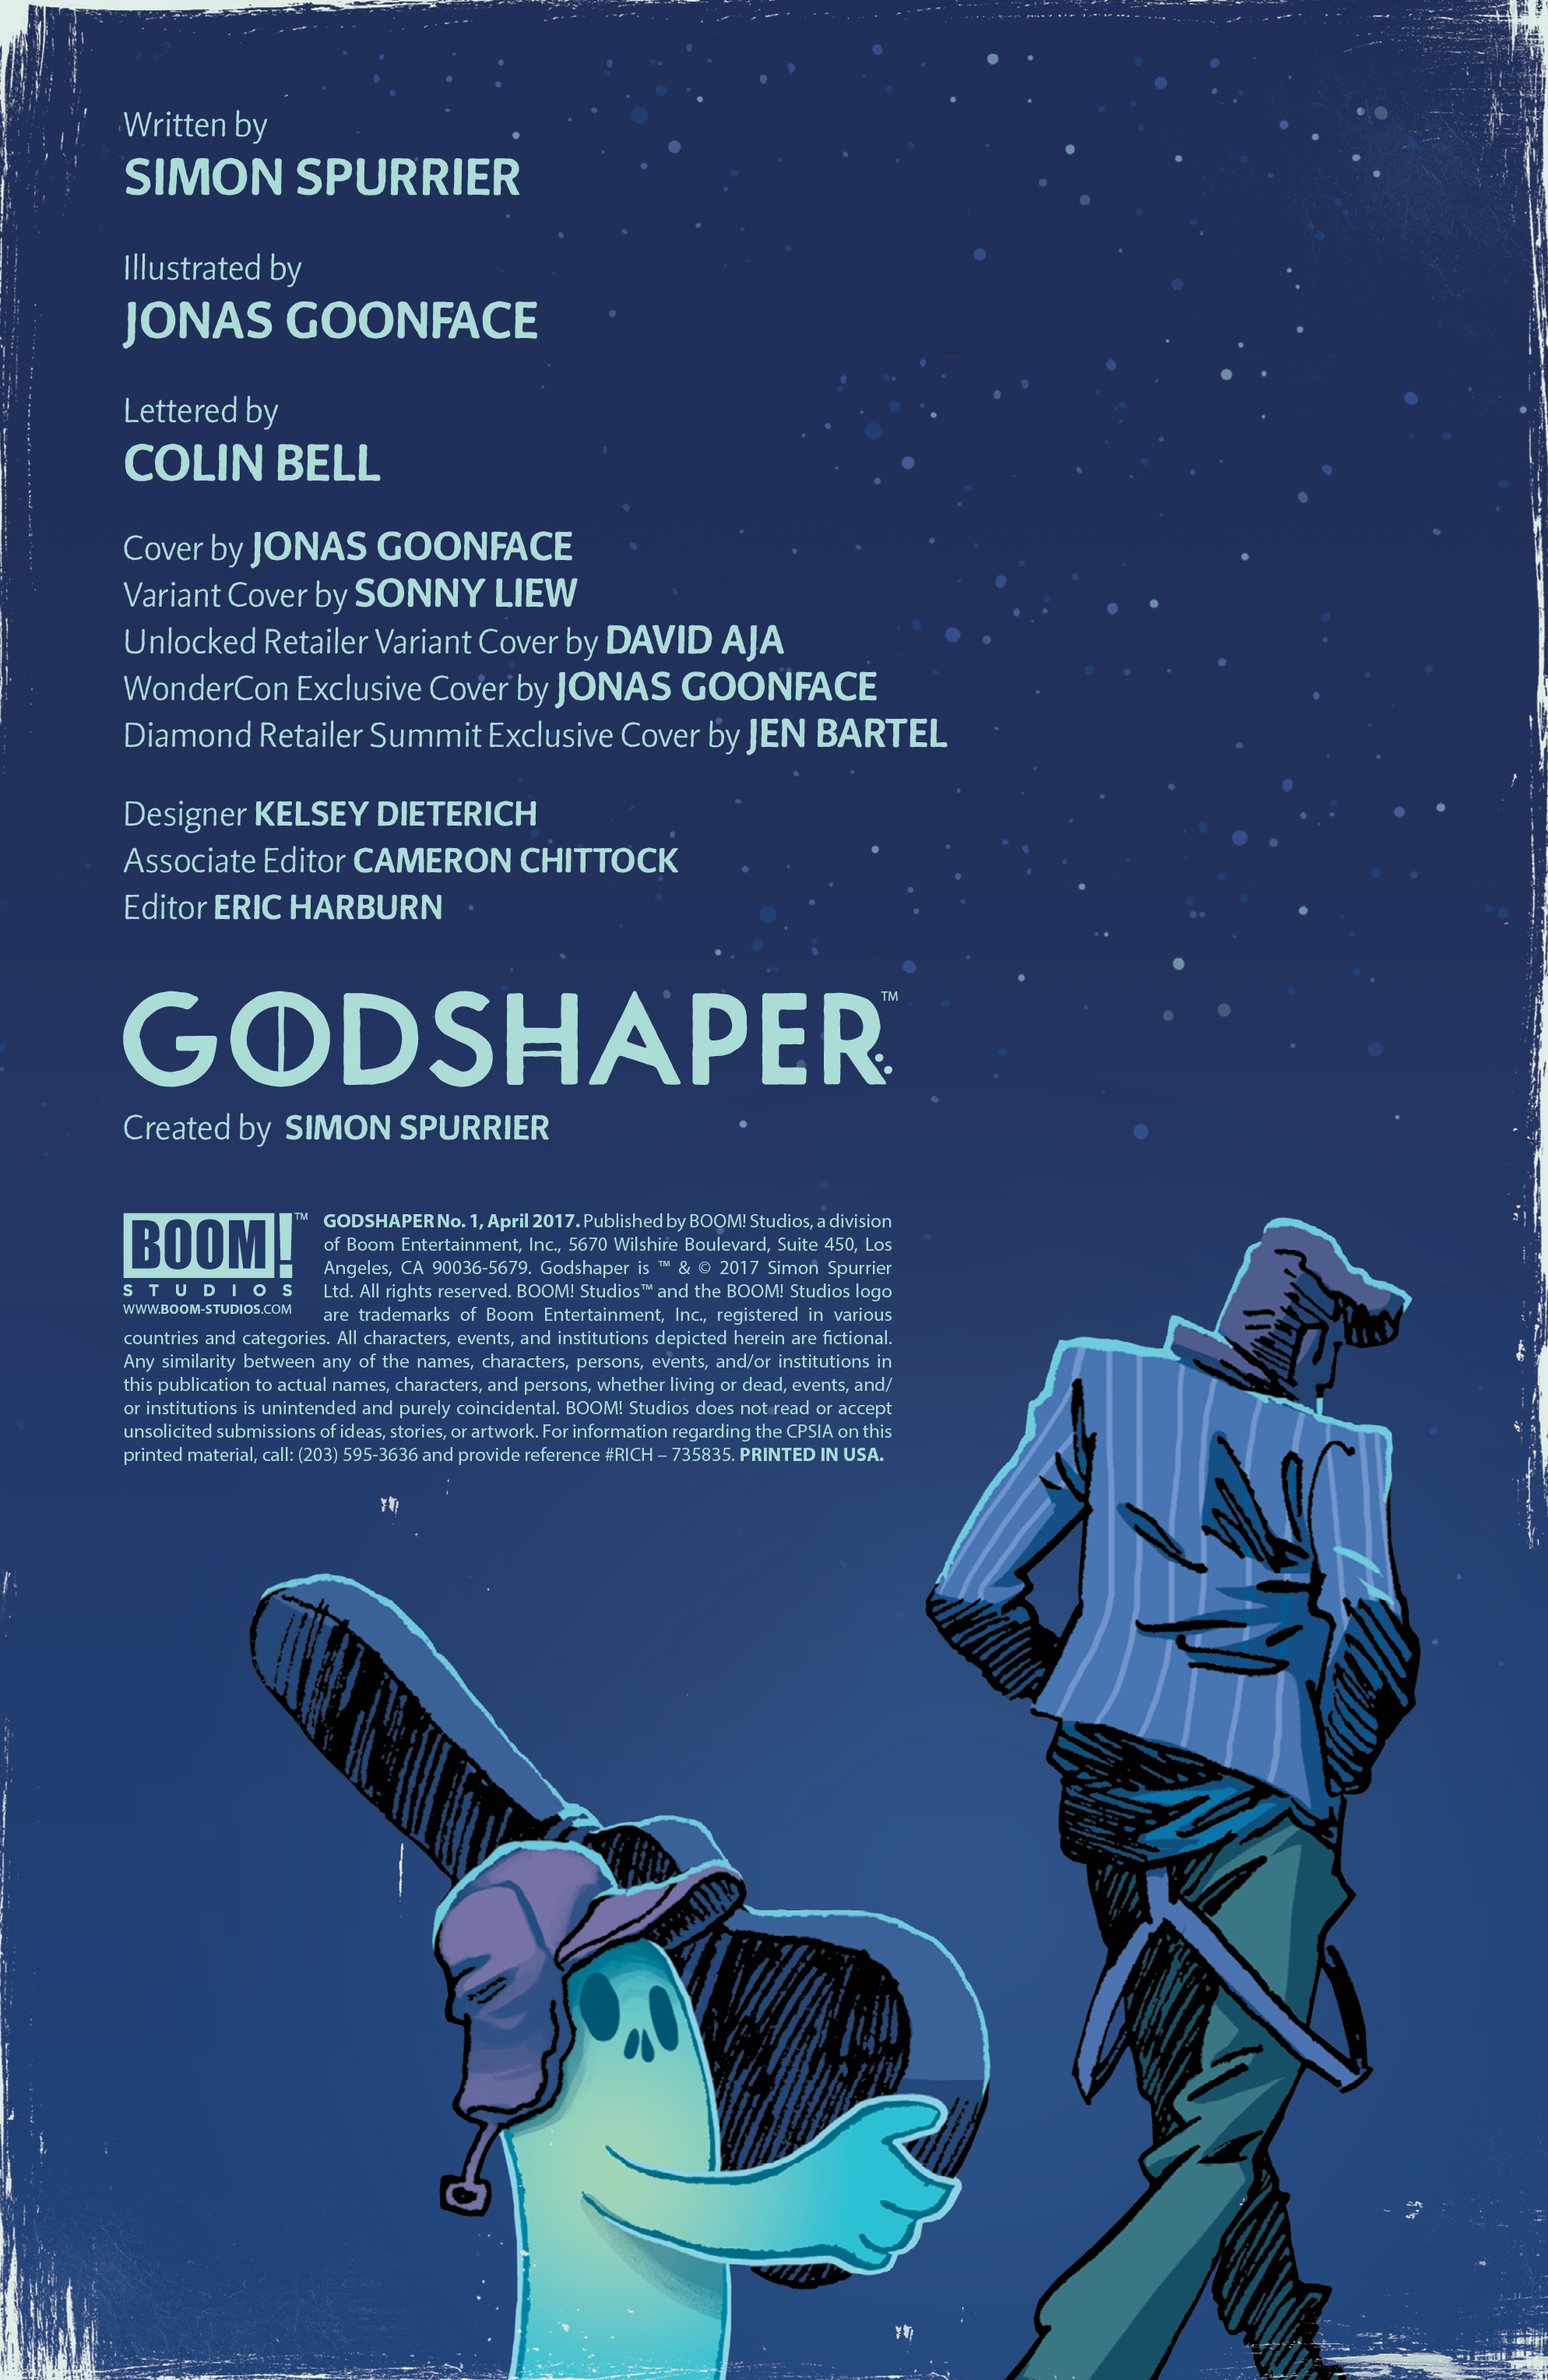 Inside credits page for issue #1